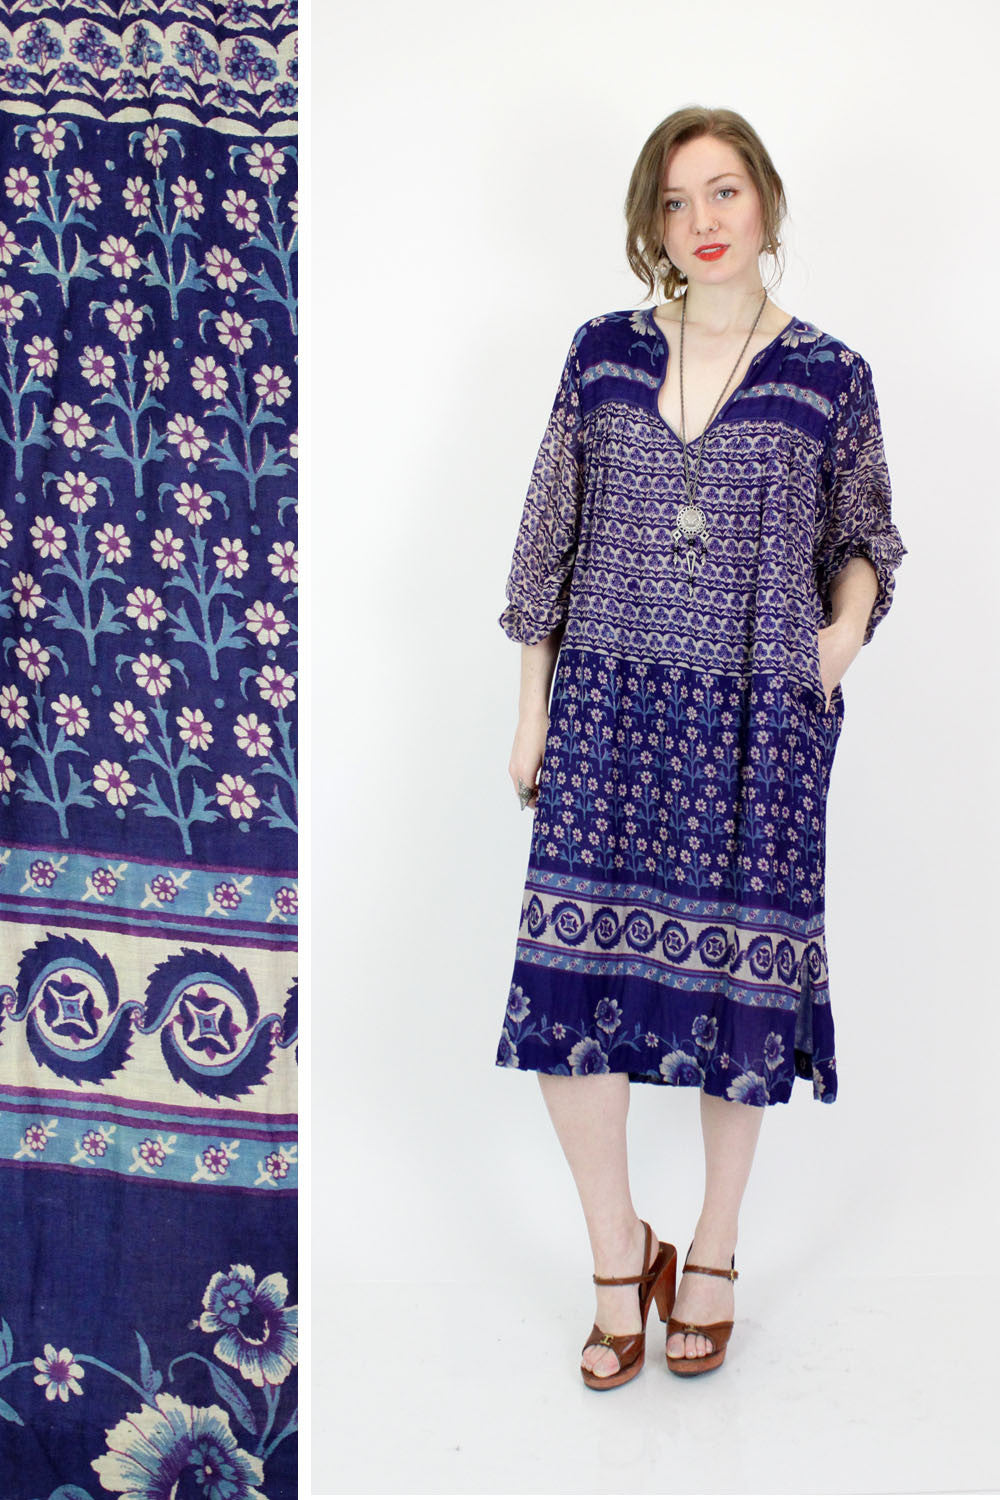 Inky Blue Floral Indian Cotton Dress